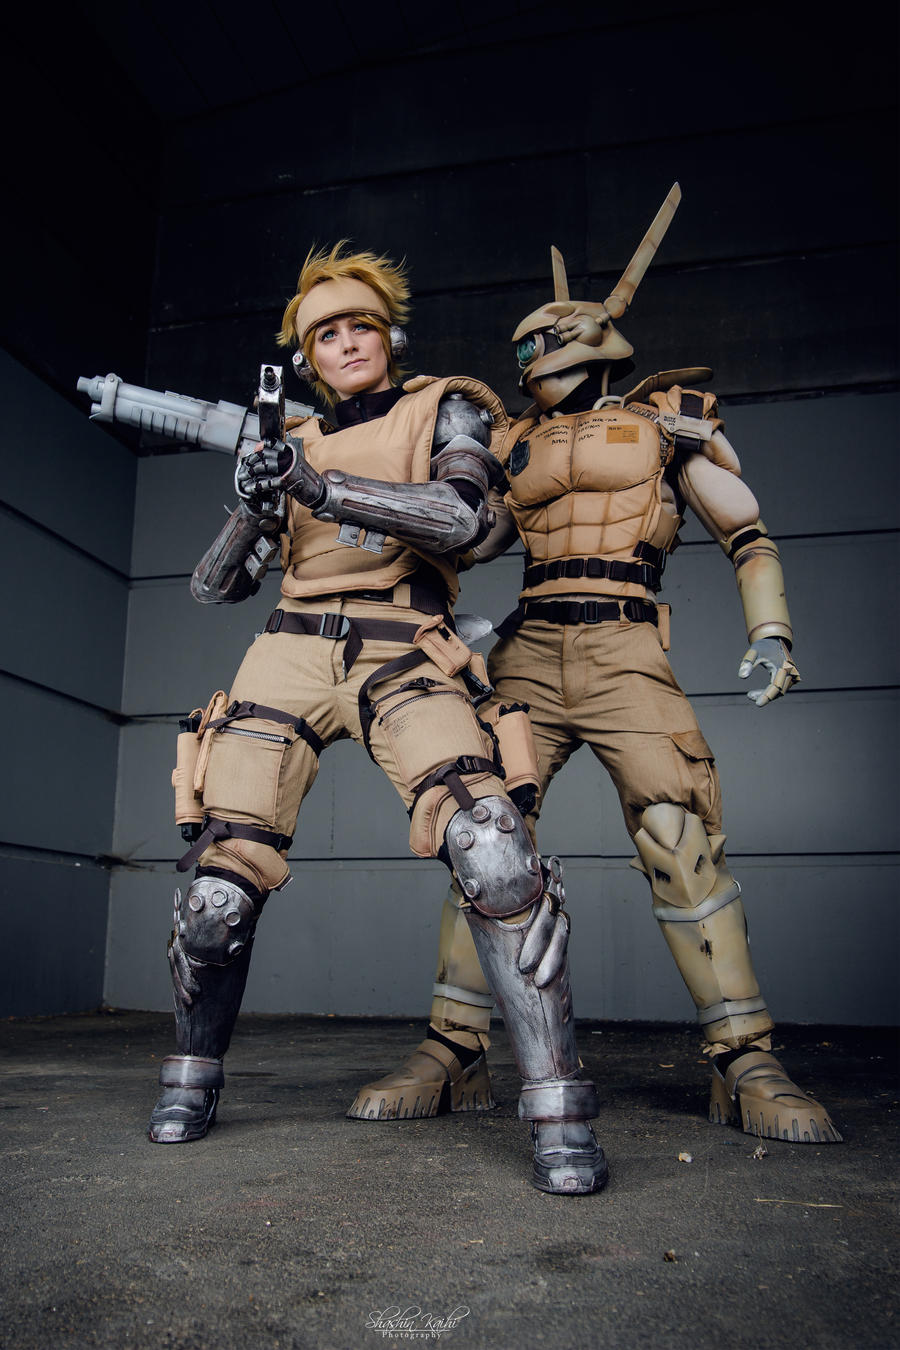 Appleseed Deunan And Briareos Iii Ecg Finale By Hime Soph On Deviantart